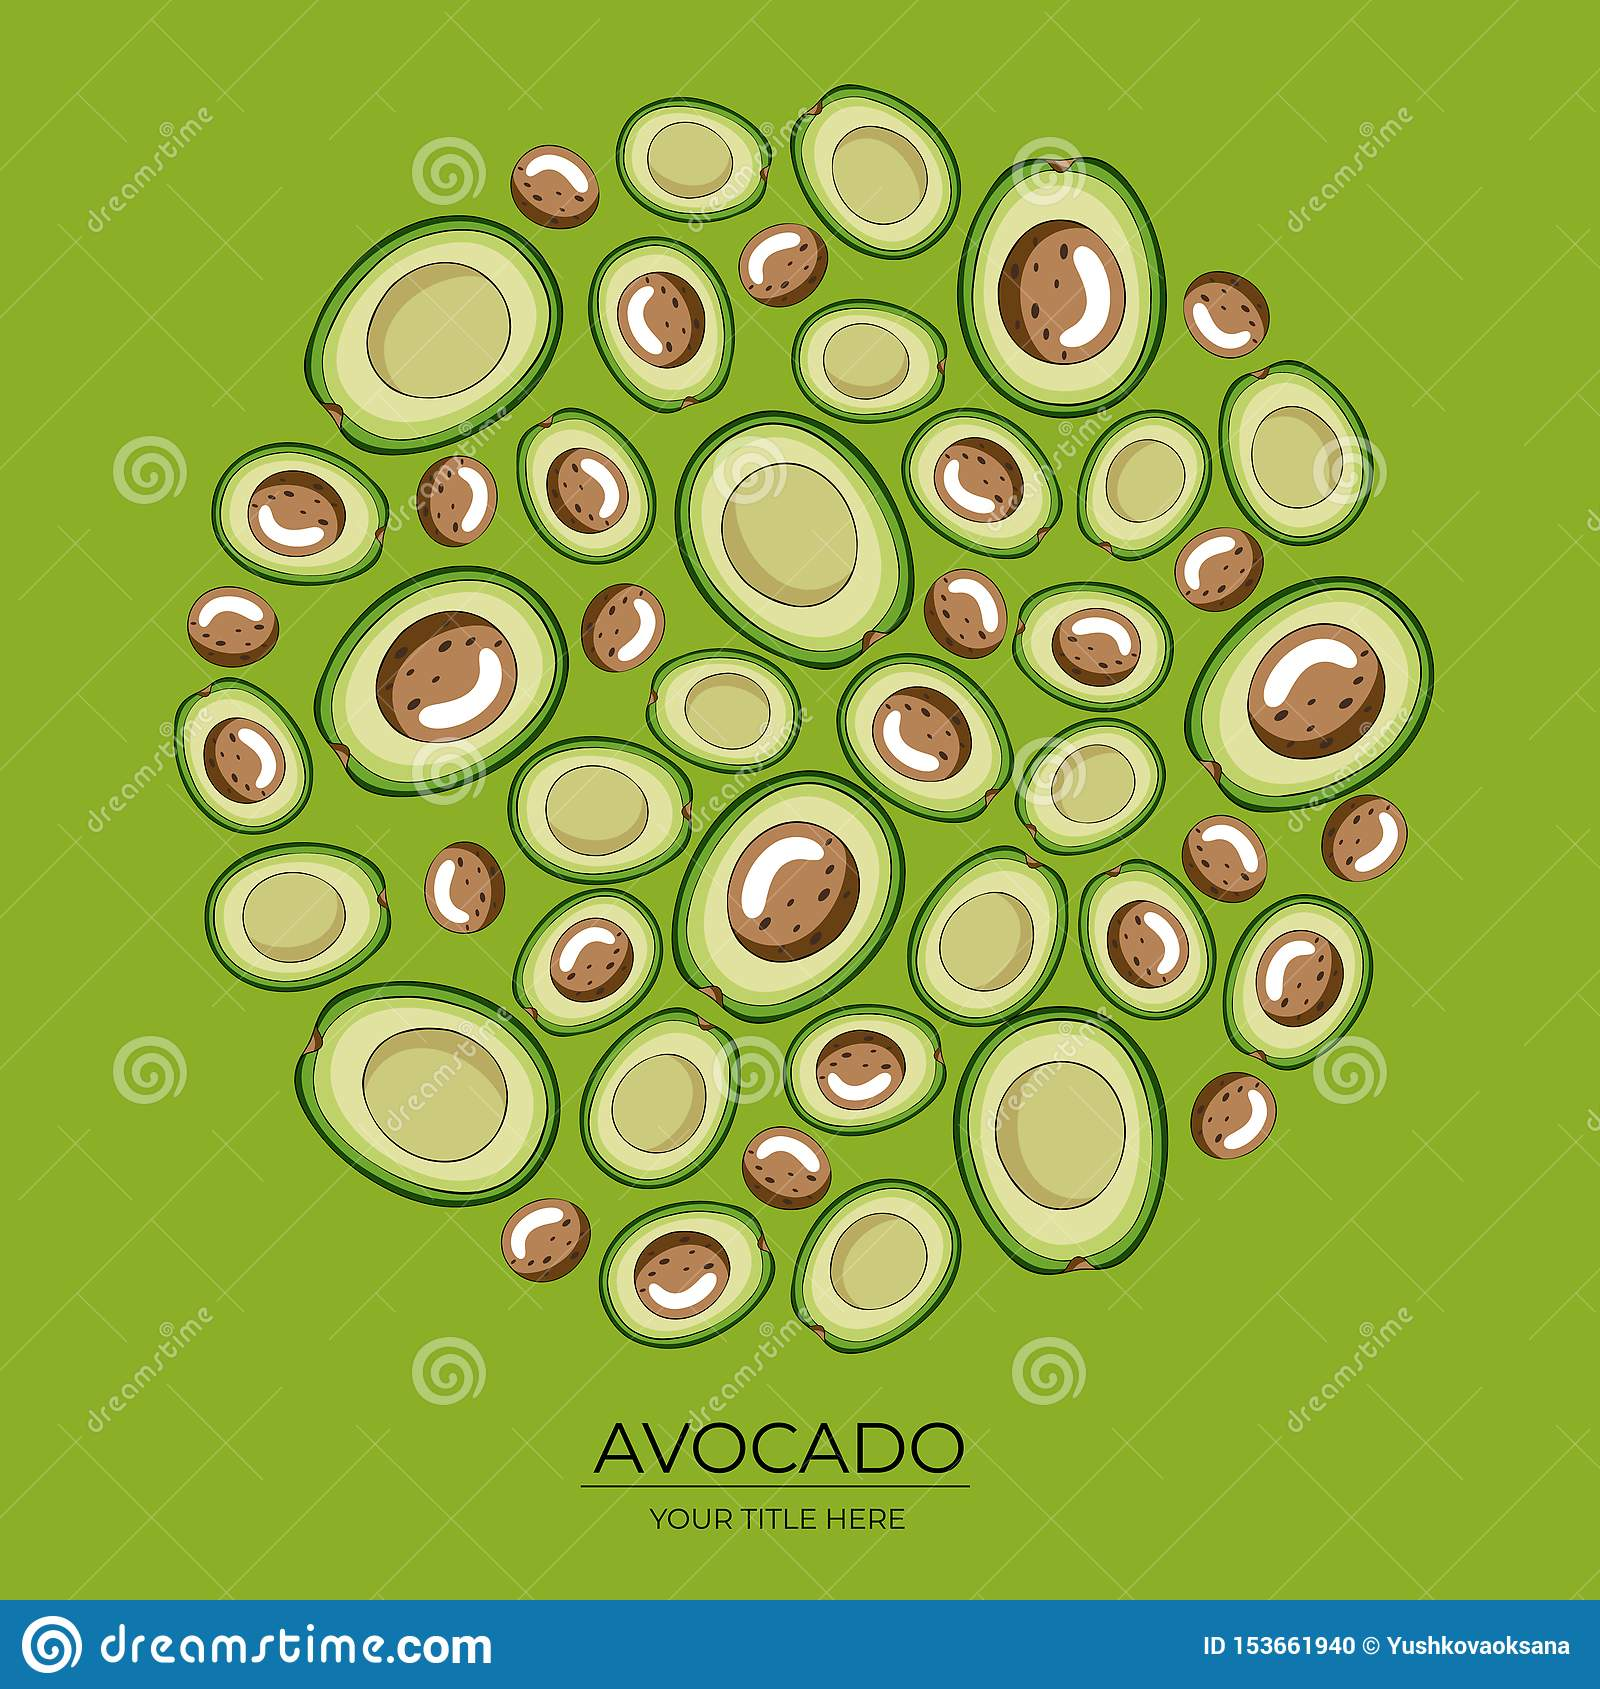 Round pattern of green avocado halves on a green background